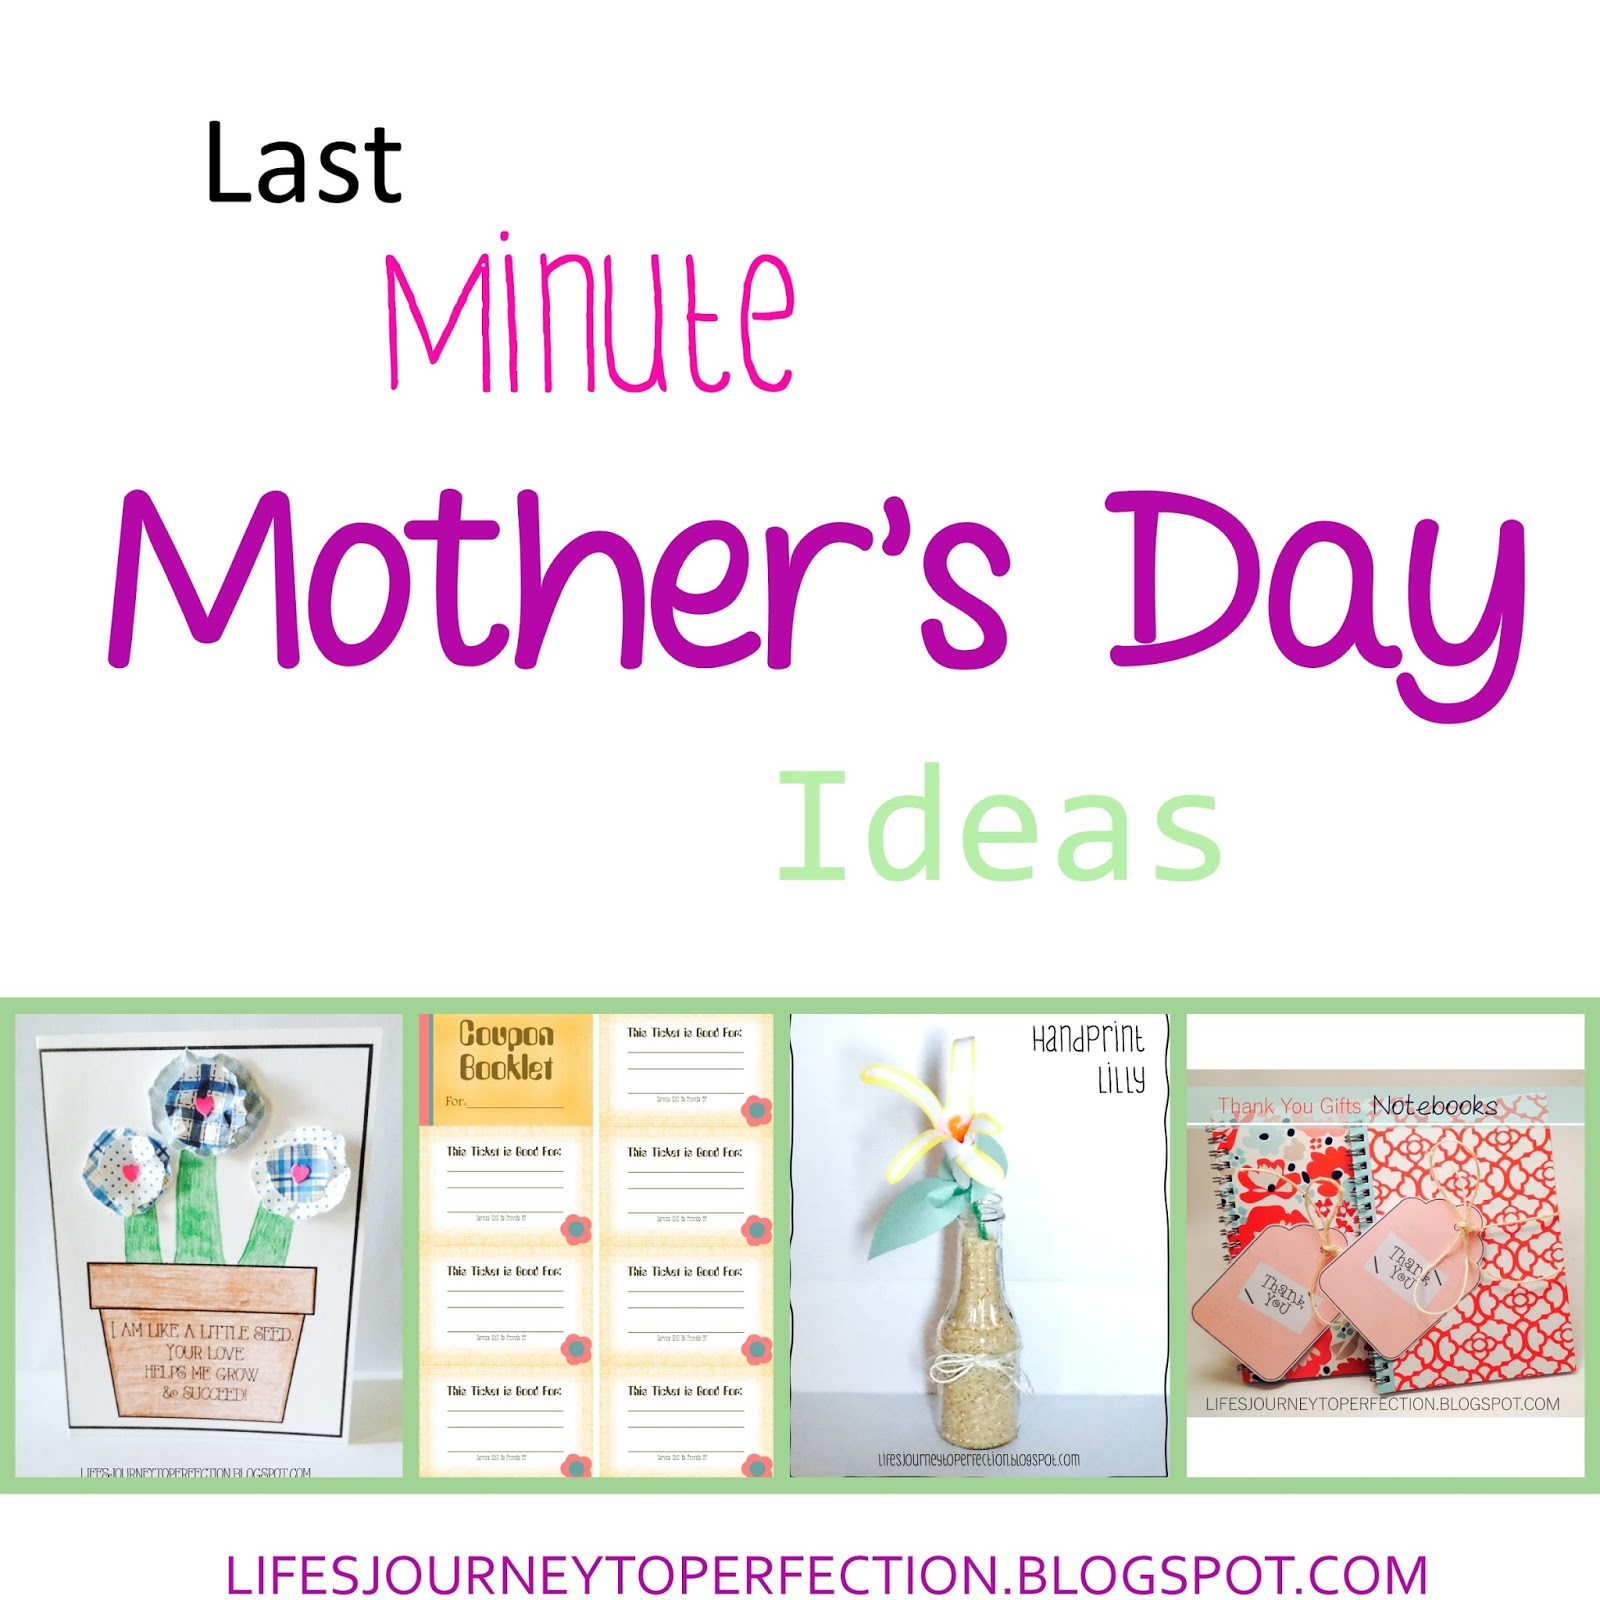 Life's Journey To Perfection: Last Minute Mother's Day Ideas